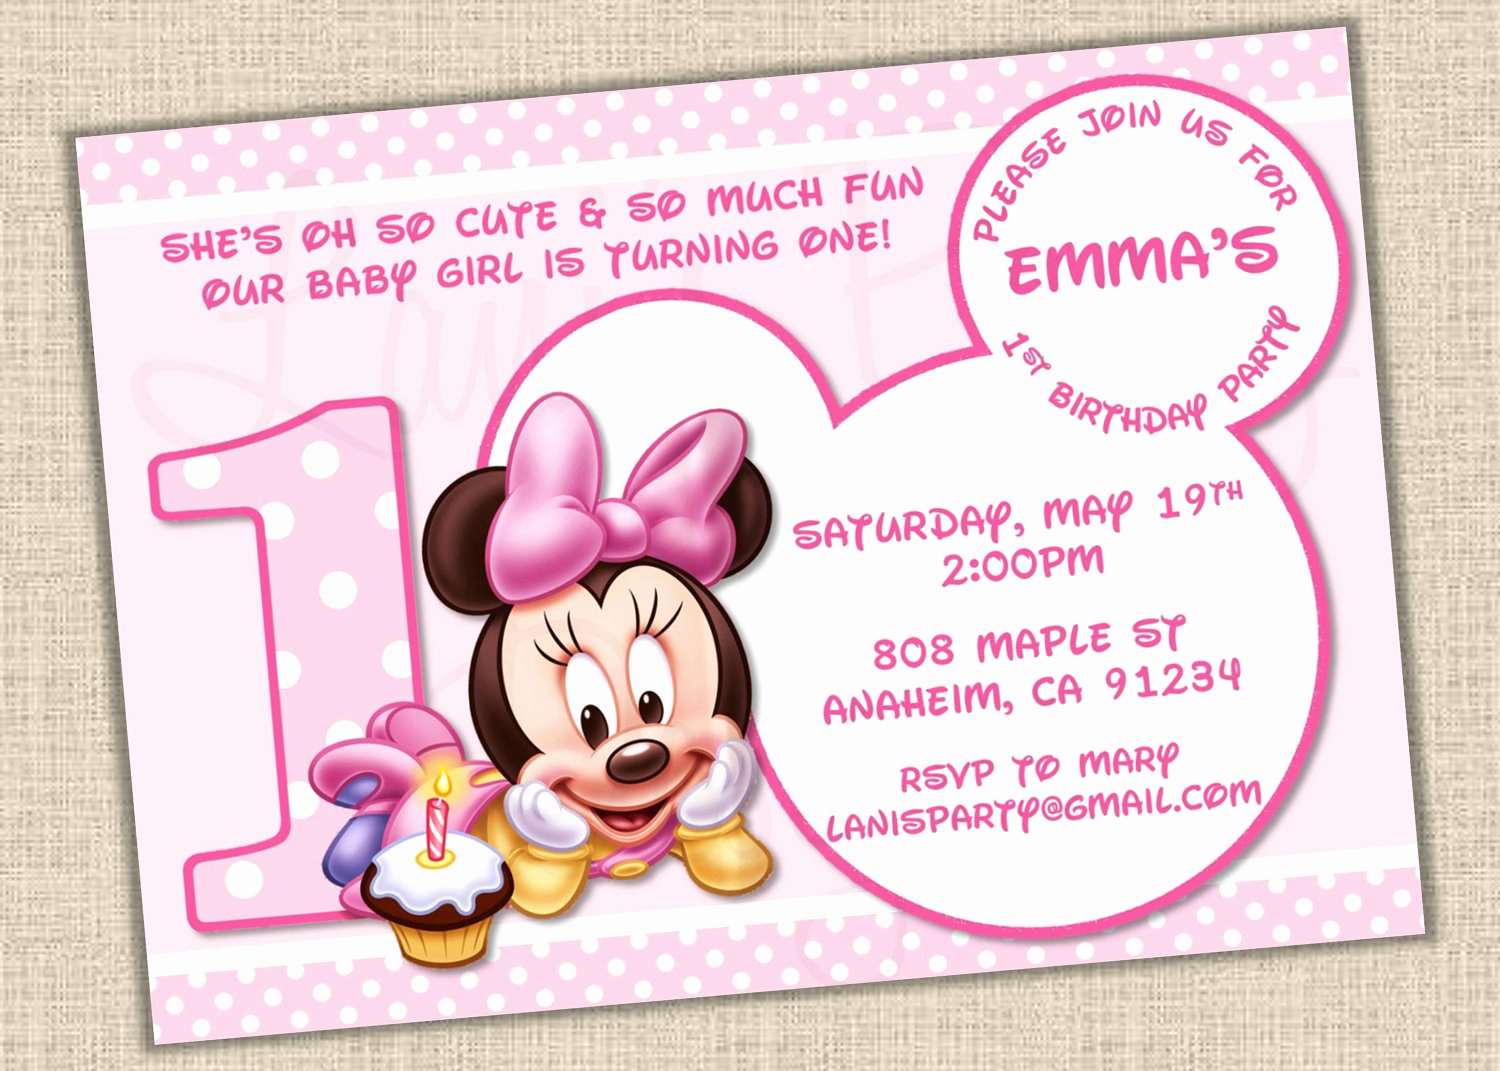 Baby Minnie Mouse Invitation Awesome Baby Minnie Mouse 1st Birthday Invitations